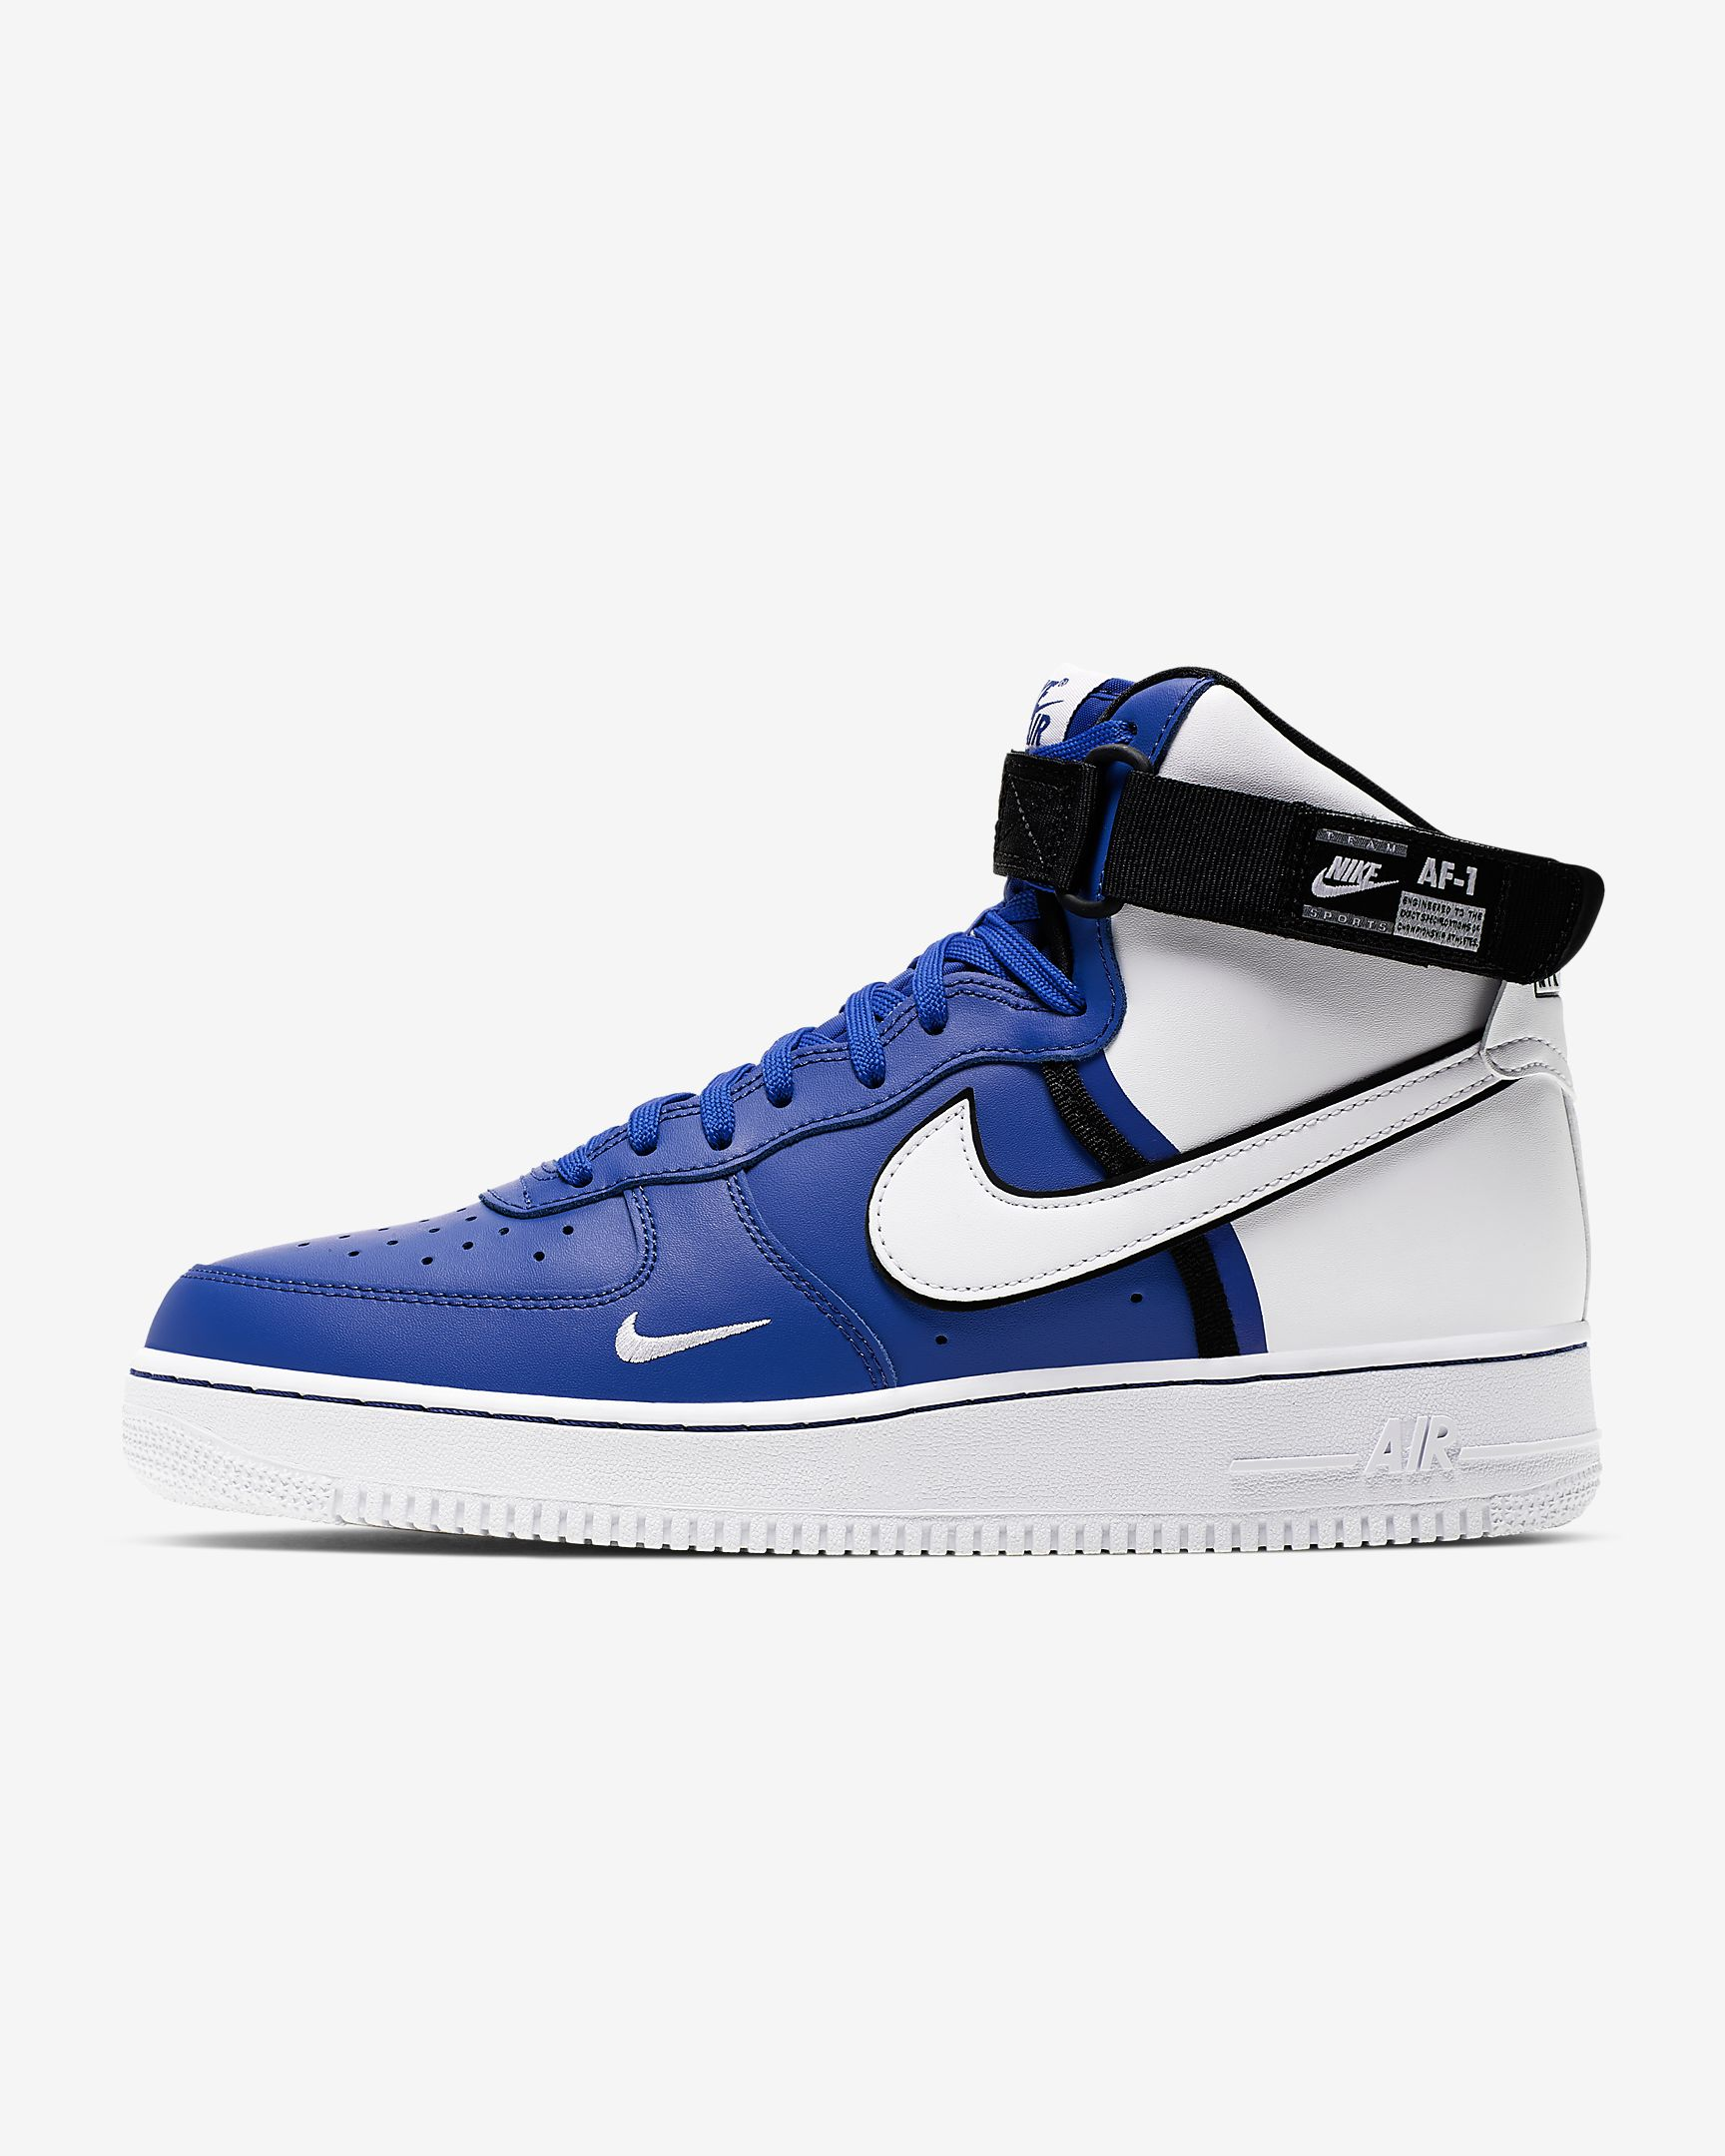 Nike Air Force 1 High 07 Lv8 Game Royal Black